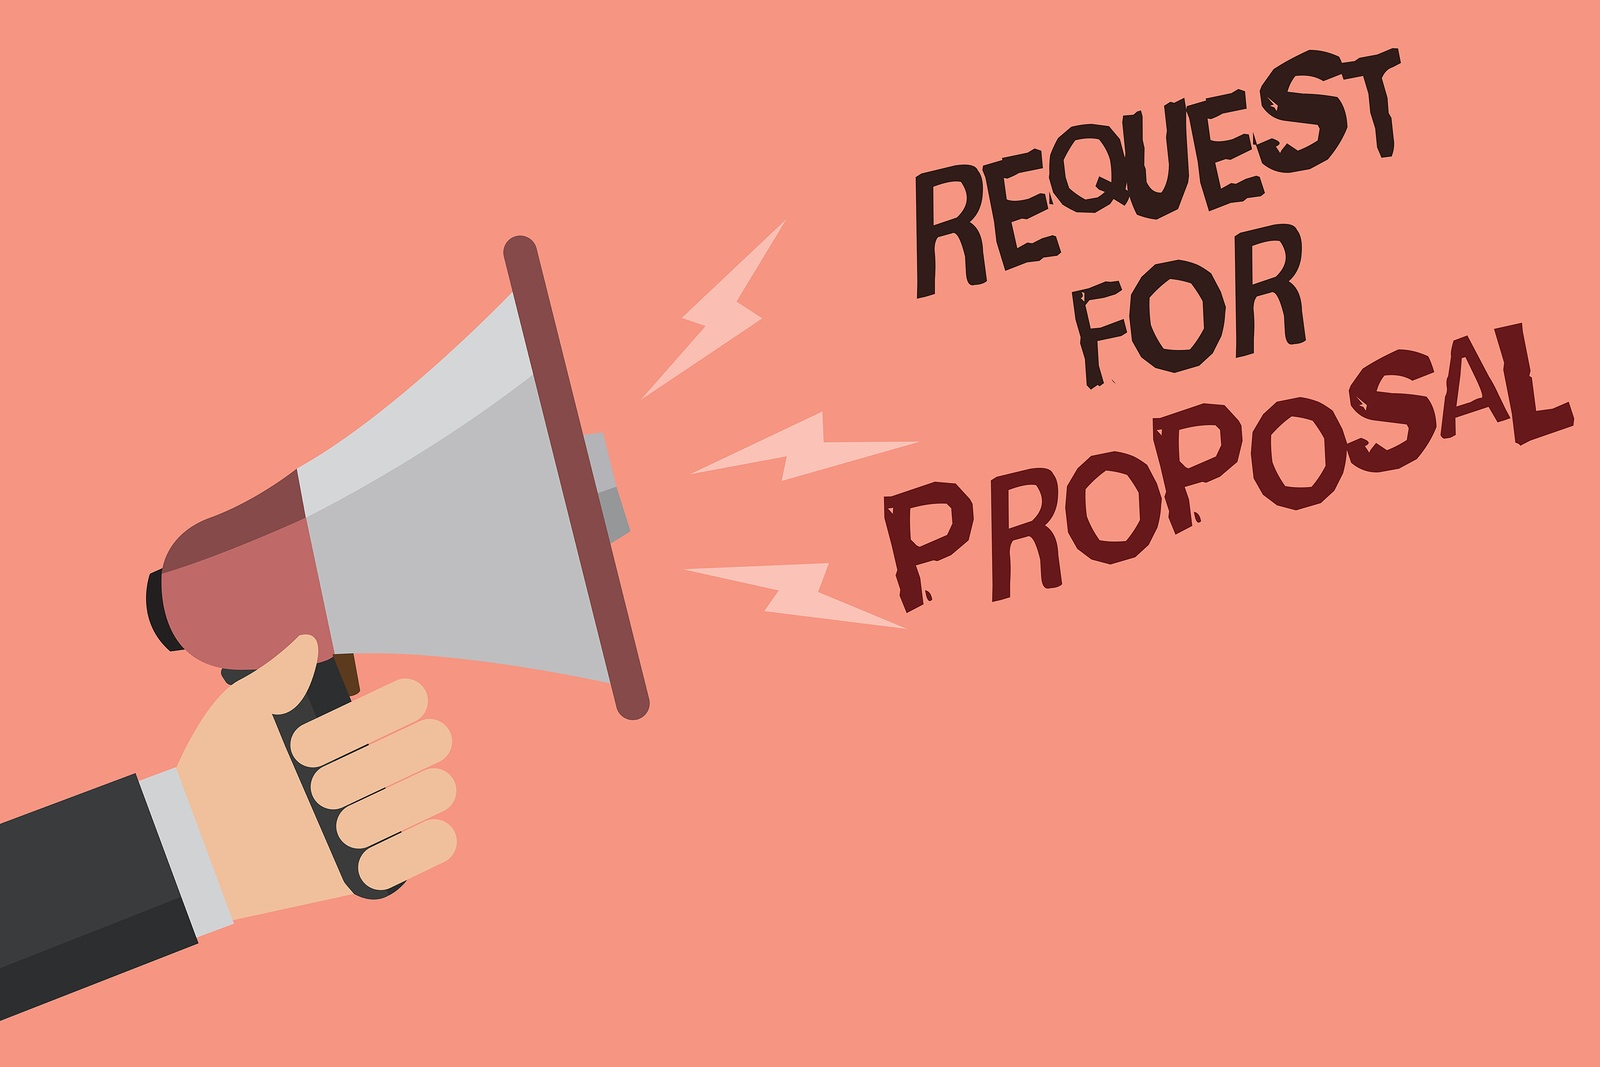 janitorial bids, janitorial requests for proposal, janitorial rfps, leaning rfps